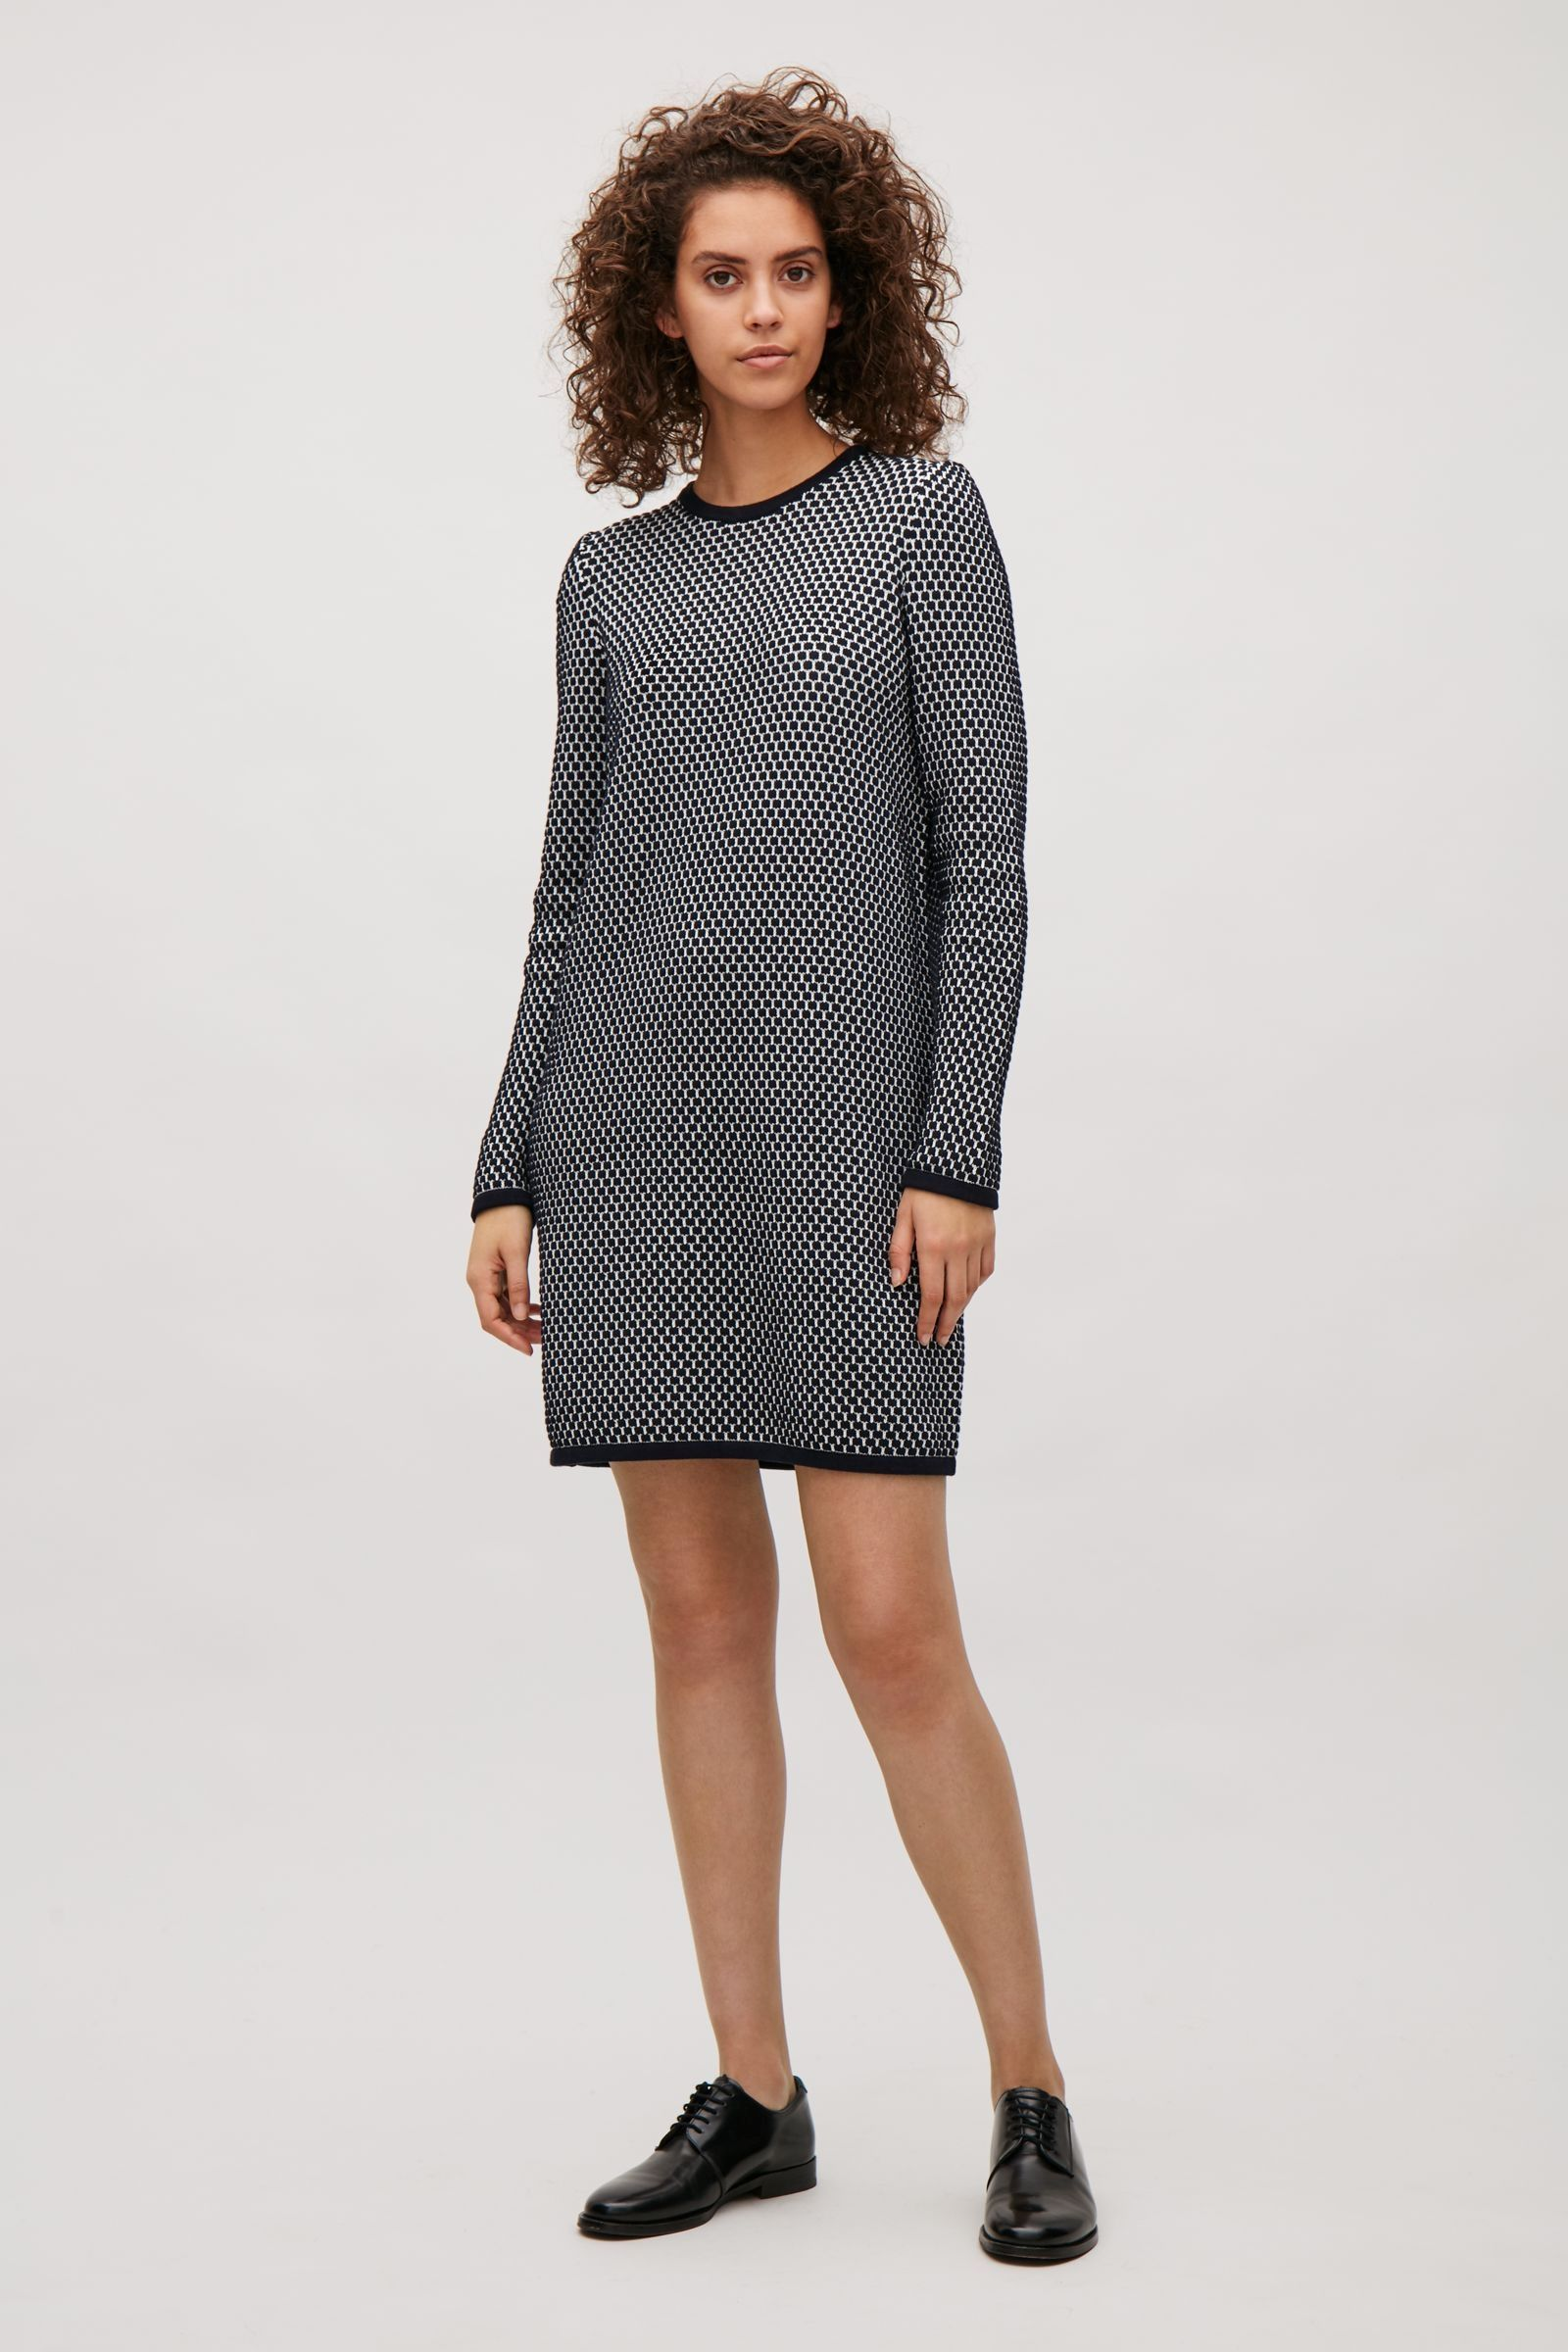 96643b0b668e COS image 1 of Raised knit dress in Dark Navy | Style: Wants & Needs ...